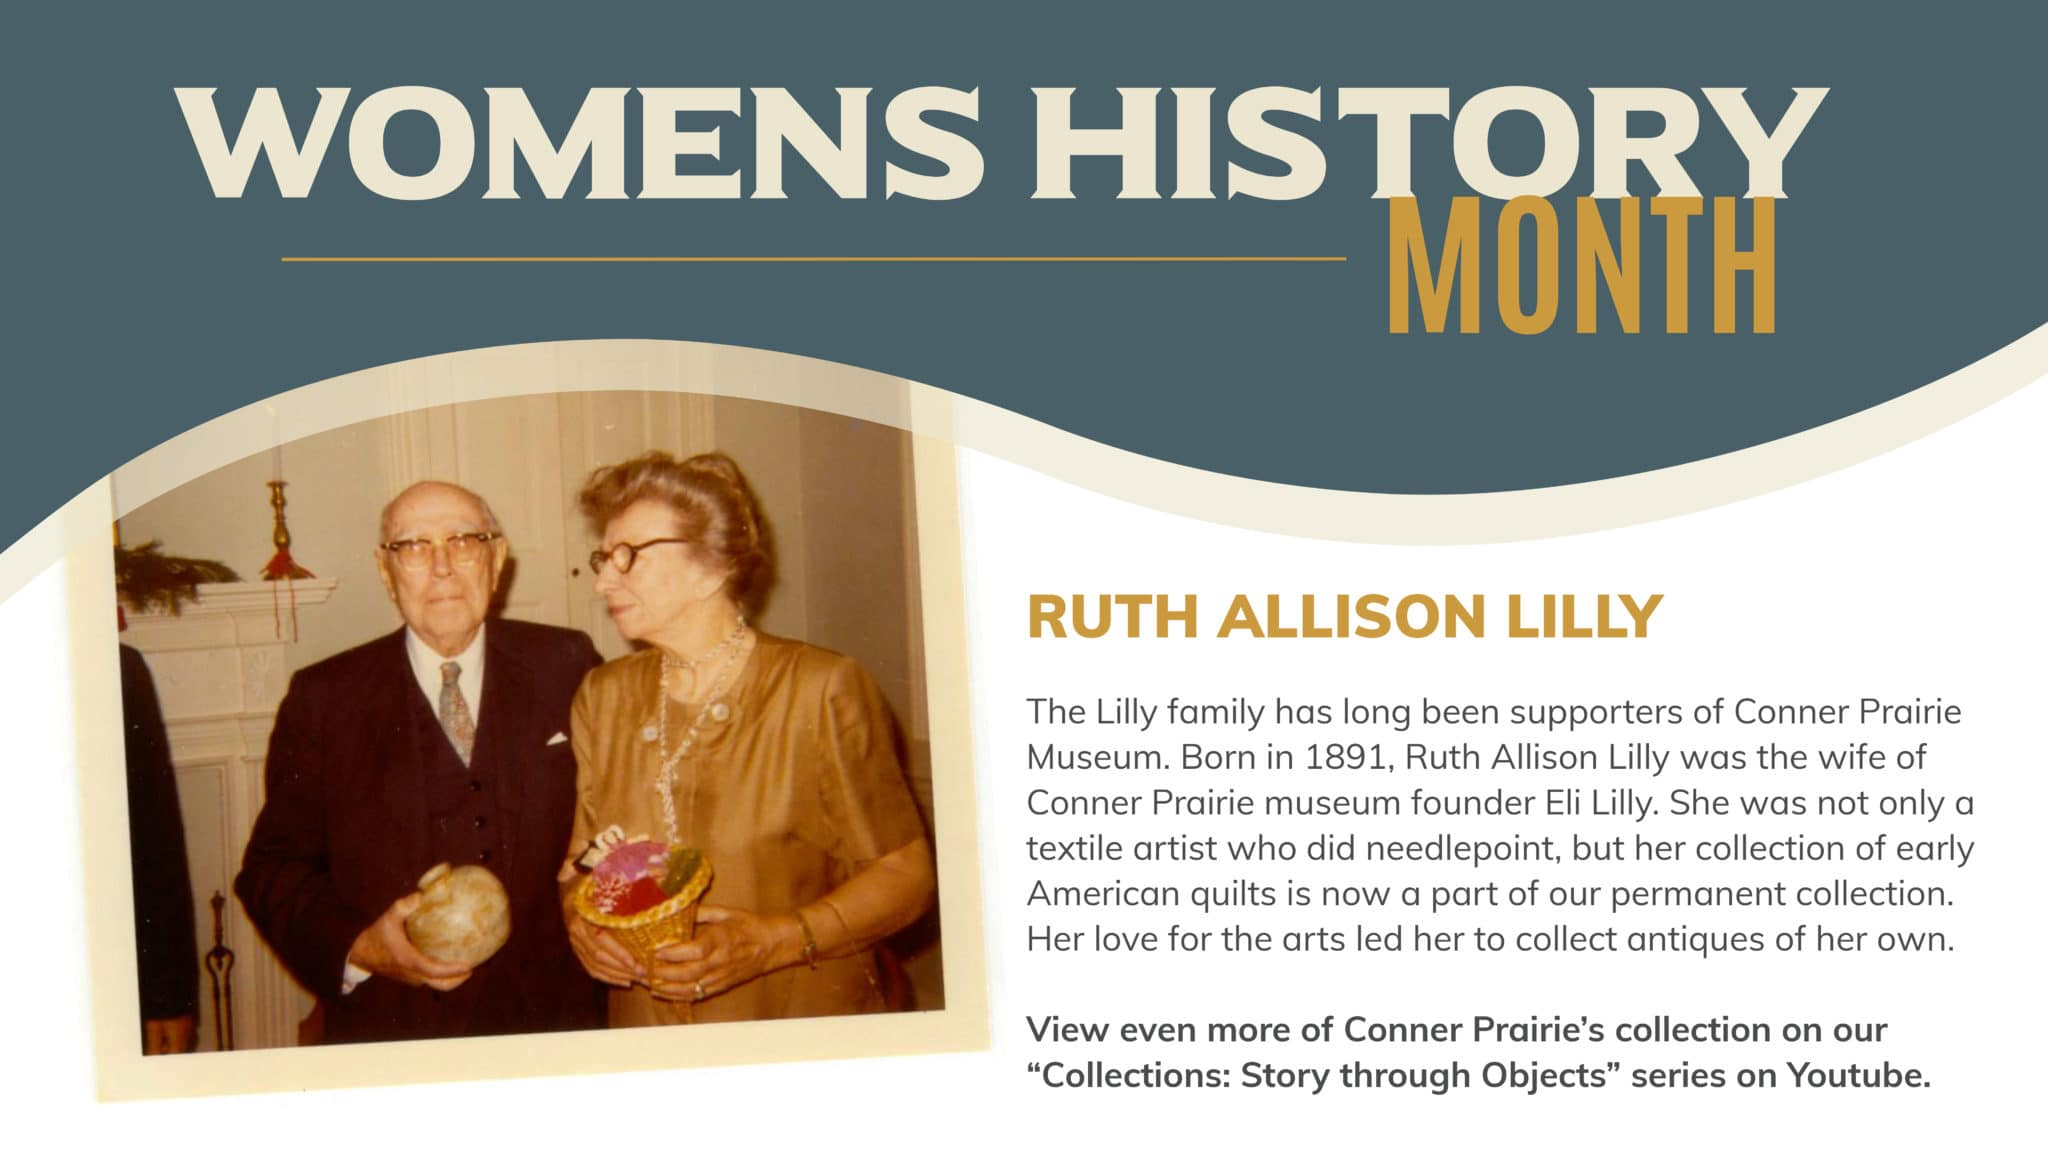 Ruth Allison Lilly